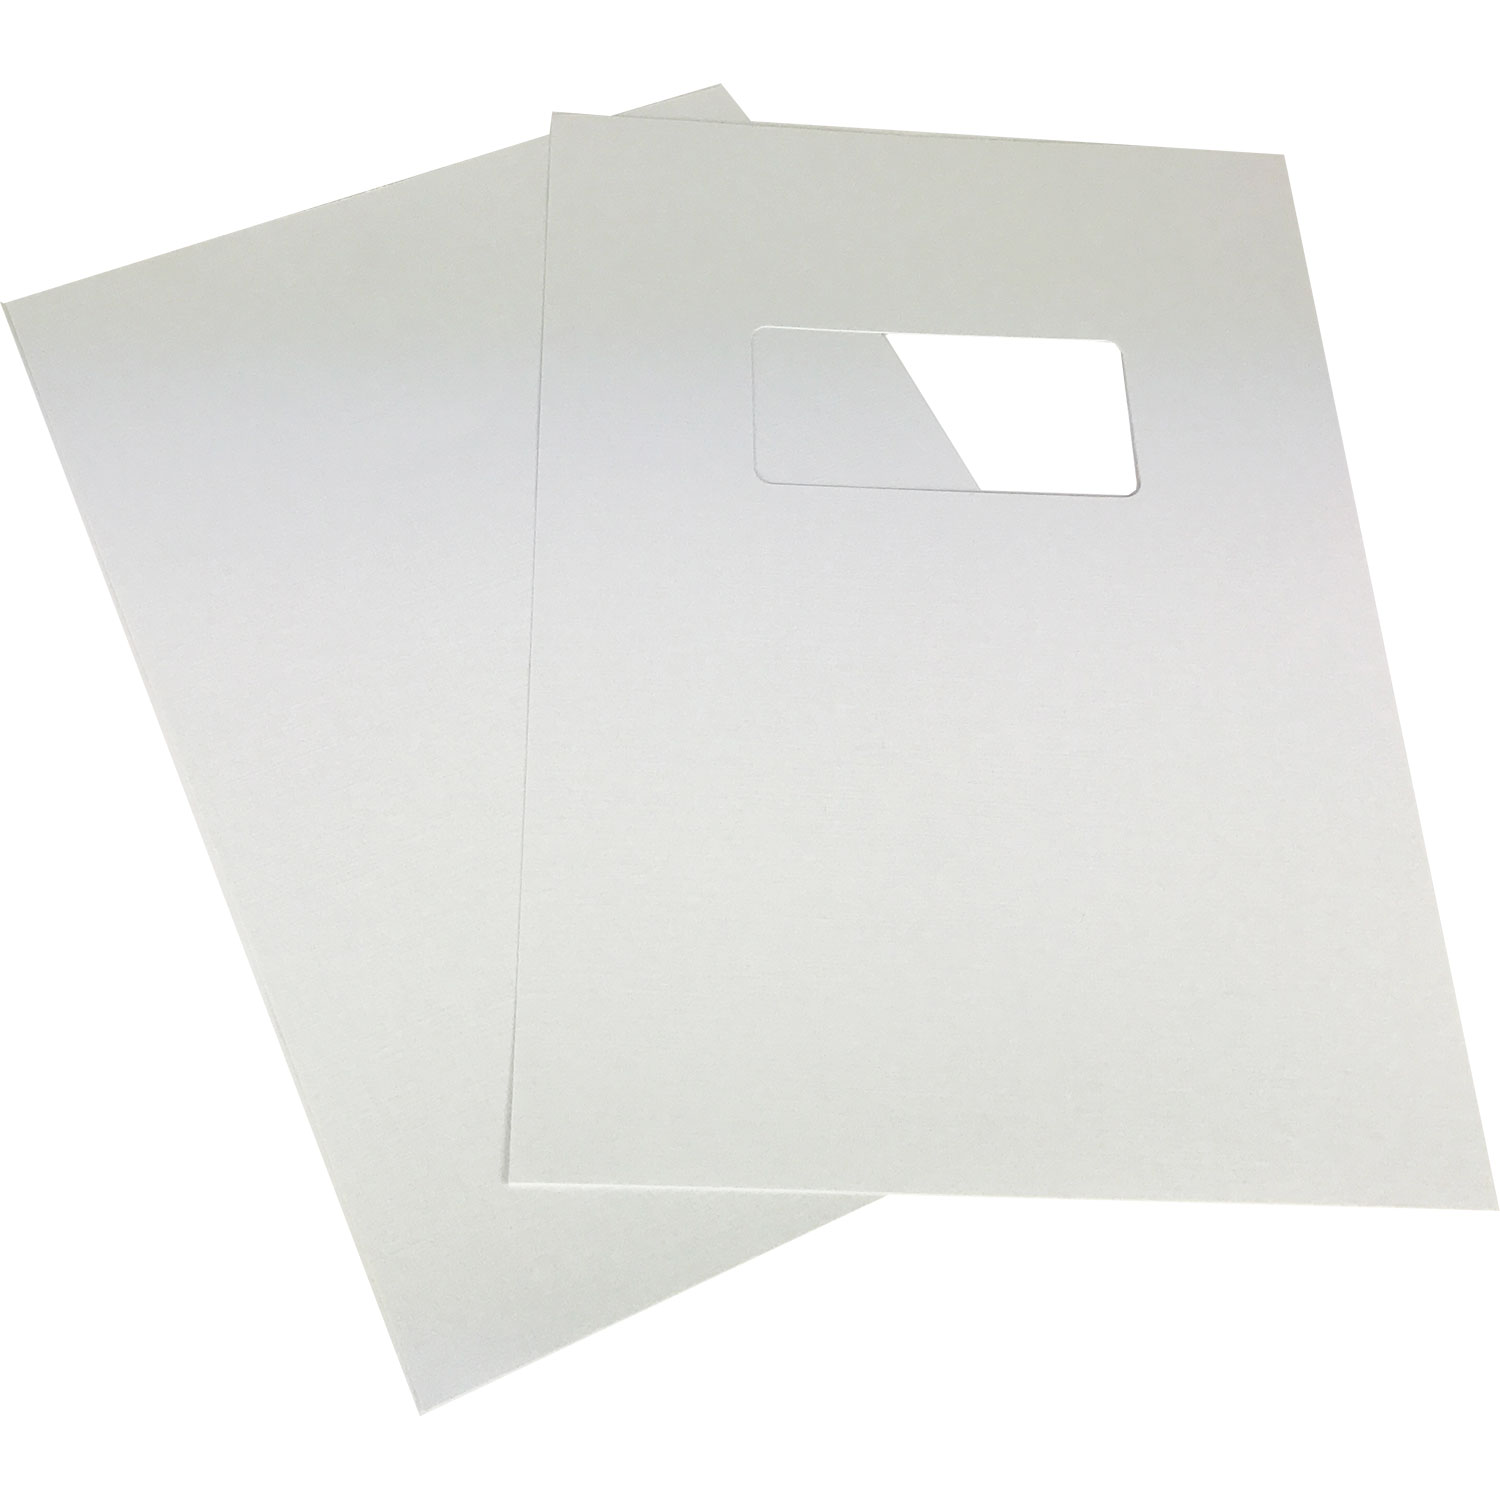 White Linen A4 Binding Covers - Window Cut-Out